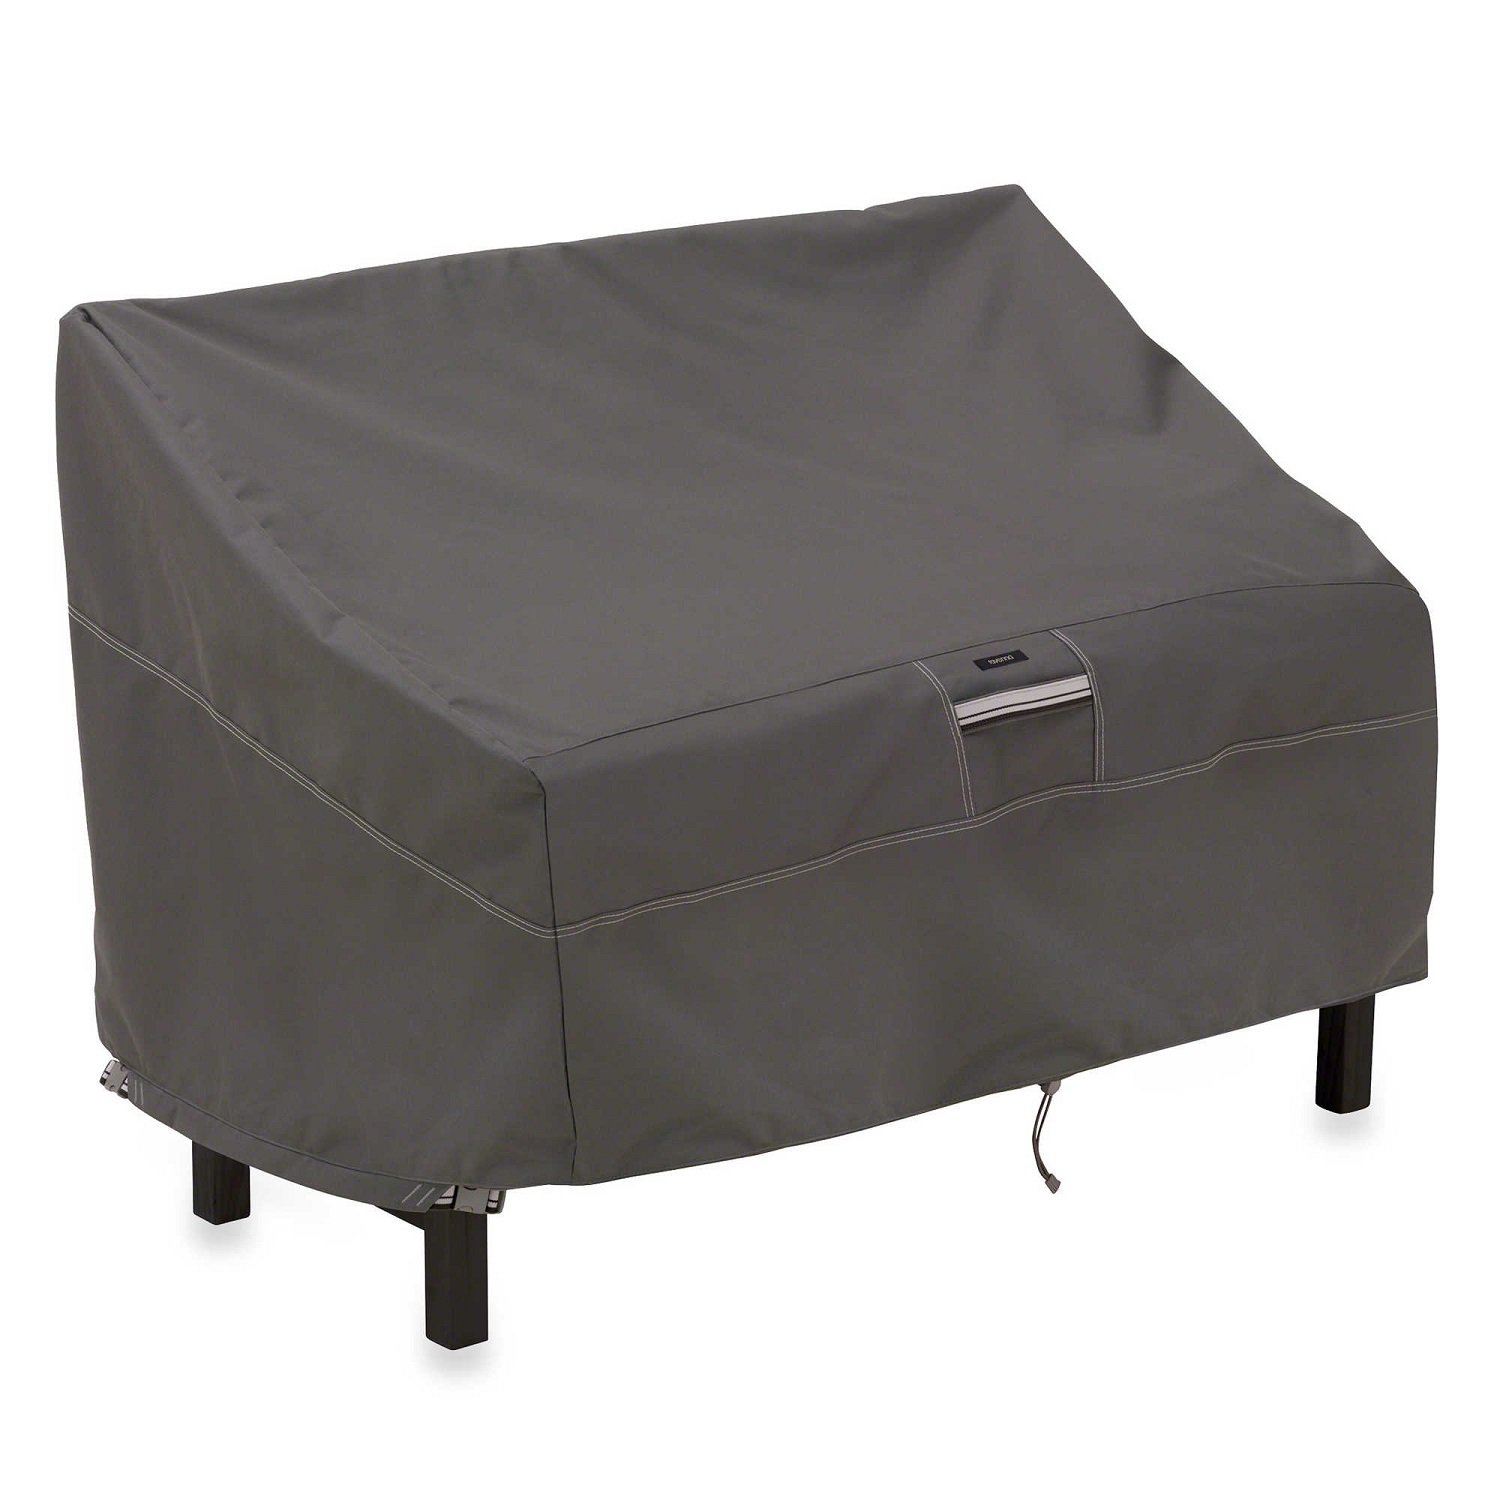 Classic Accessories 55-164-015101-00 Bench Cover